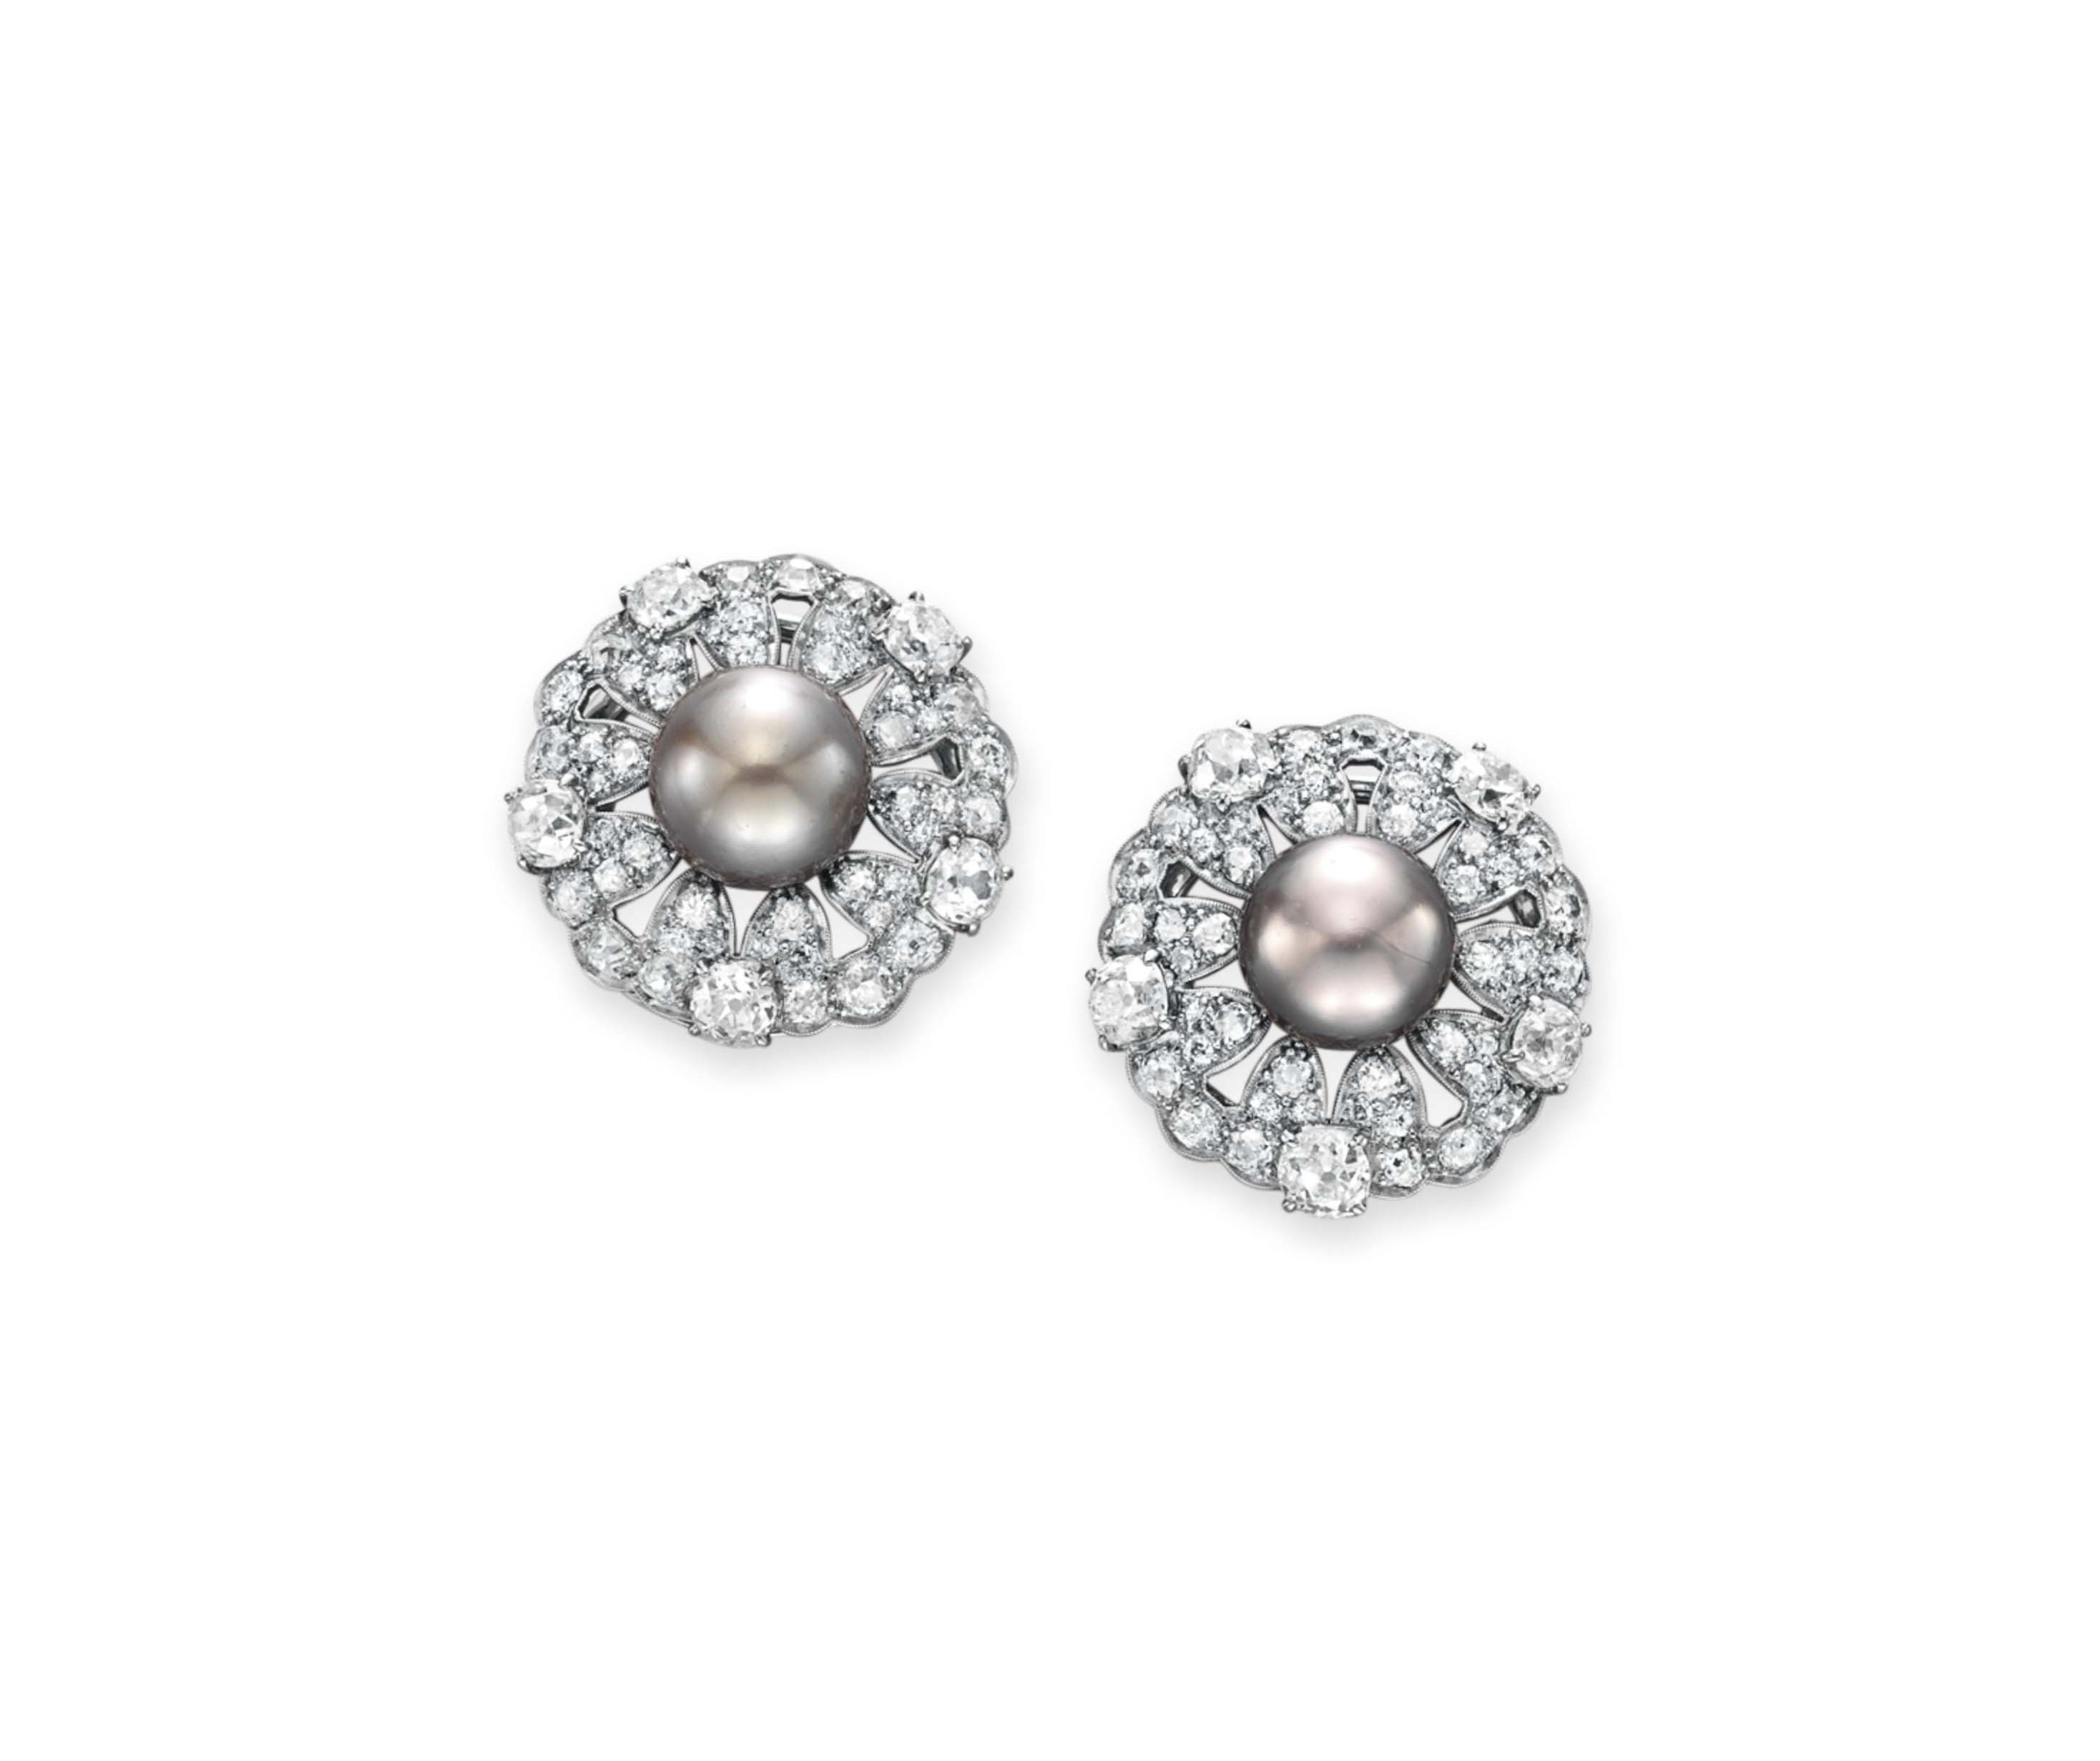 A PAIR OF DIAMOND AND NATURAL PEARL CLIP BROOCHES, BY RAYMOND YARD